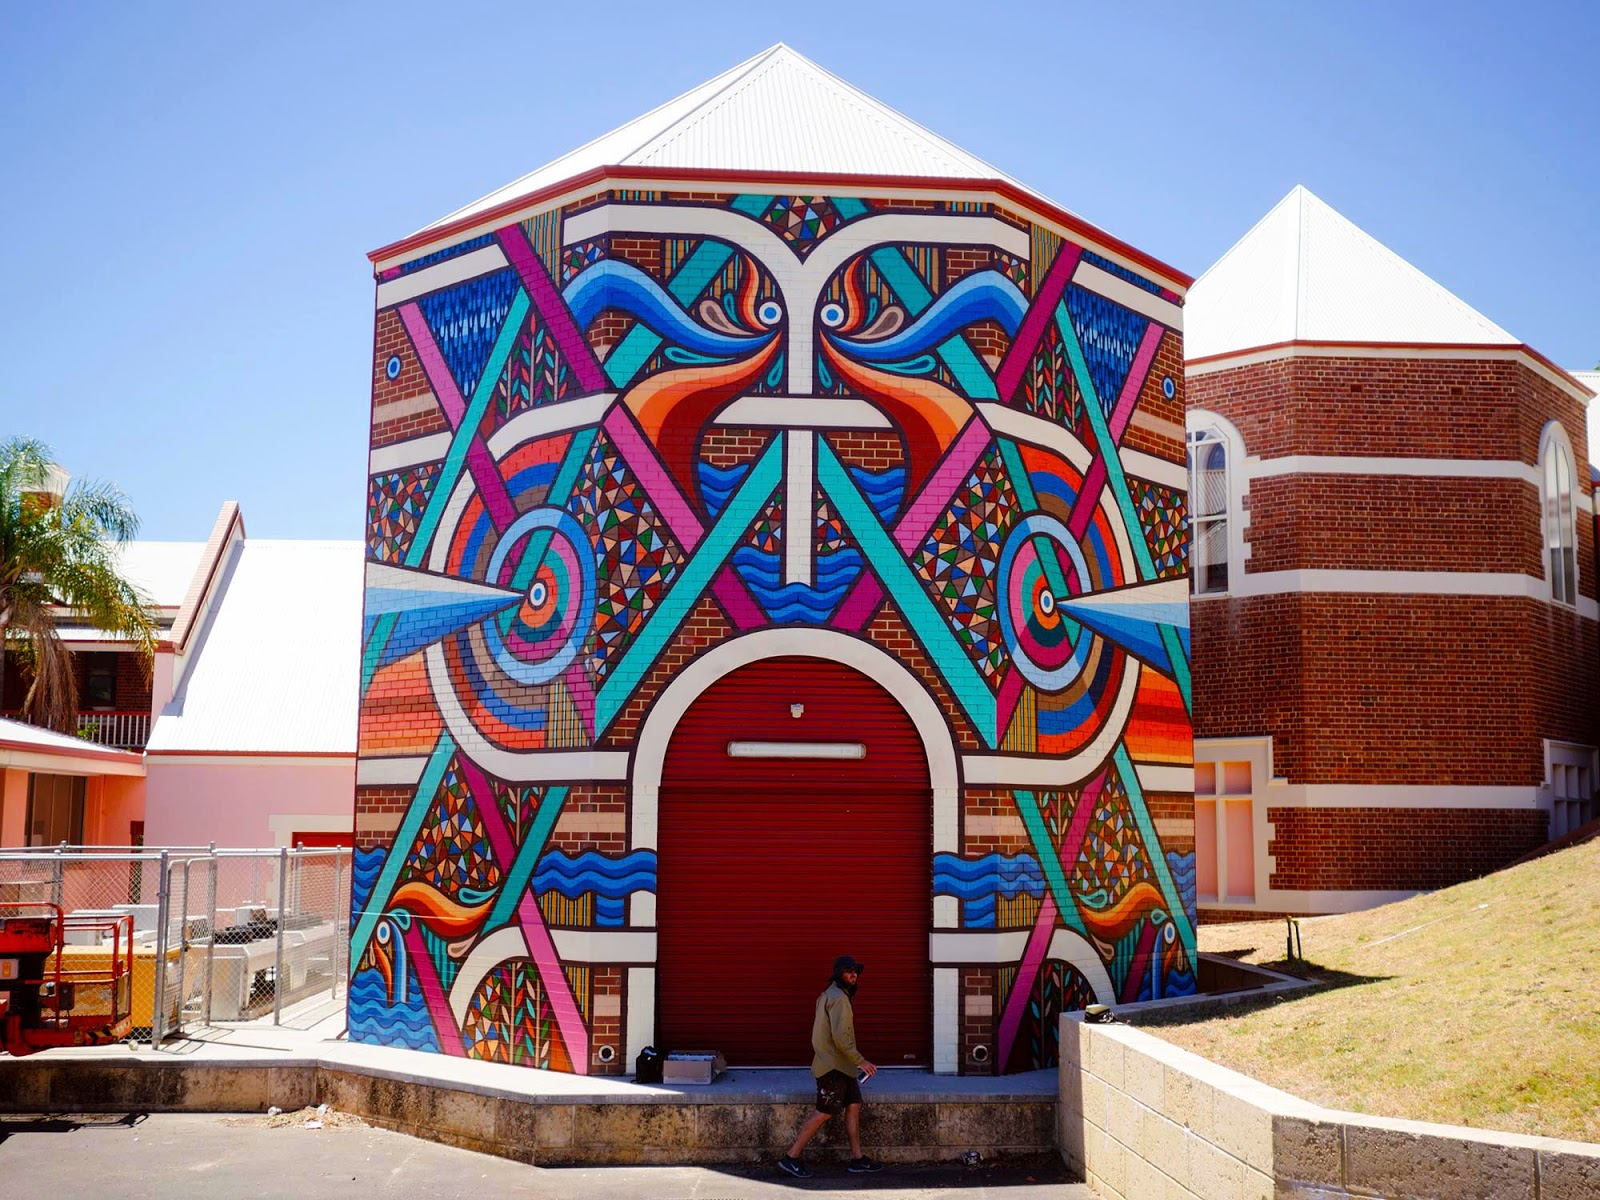 The Re.Discover 2015 Street Art Festival is currently underway on the streets of Bunbury in Australia where Beastman just finished working on this new piece.